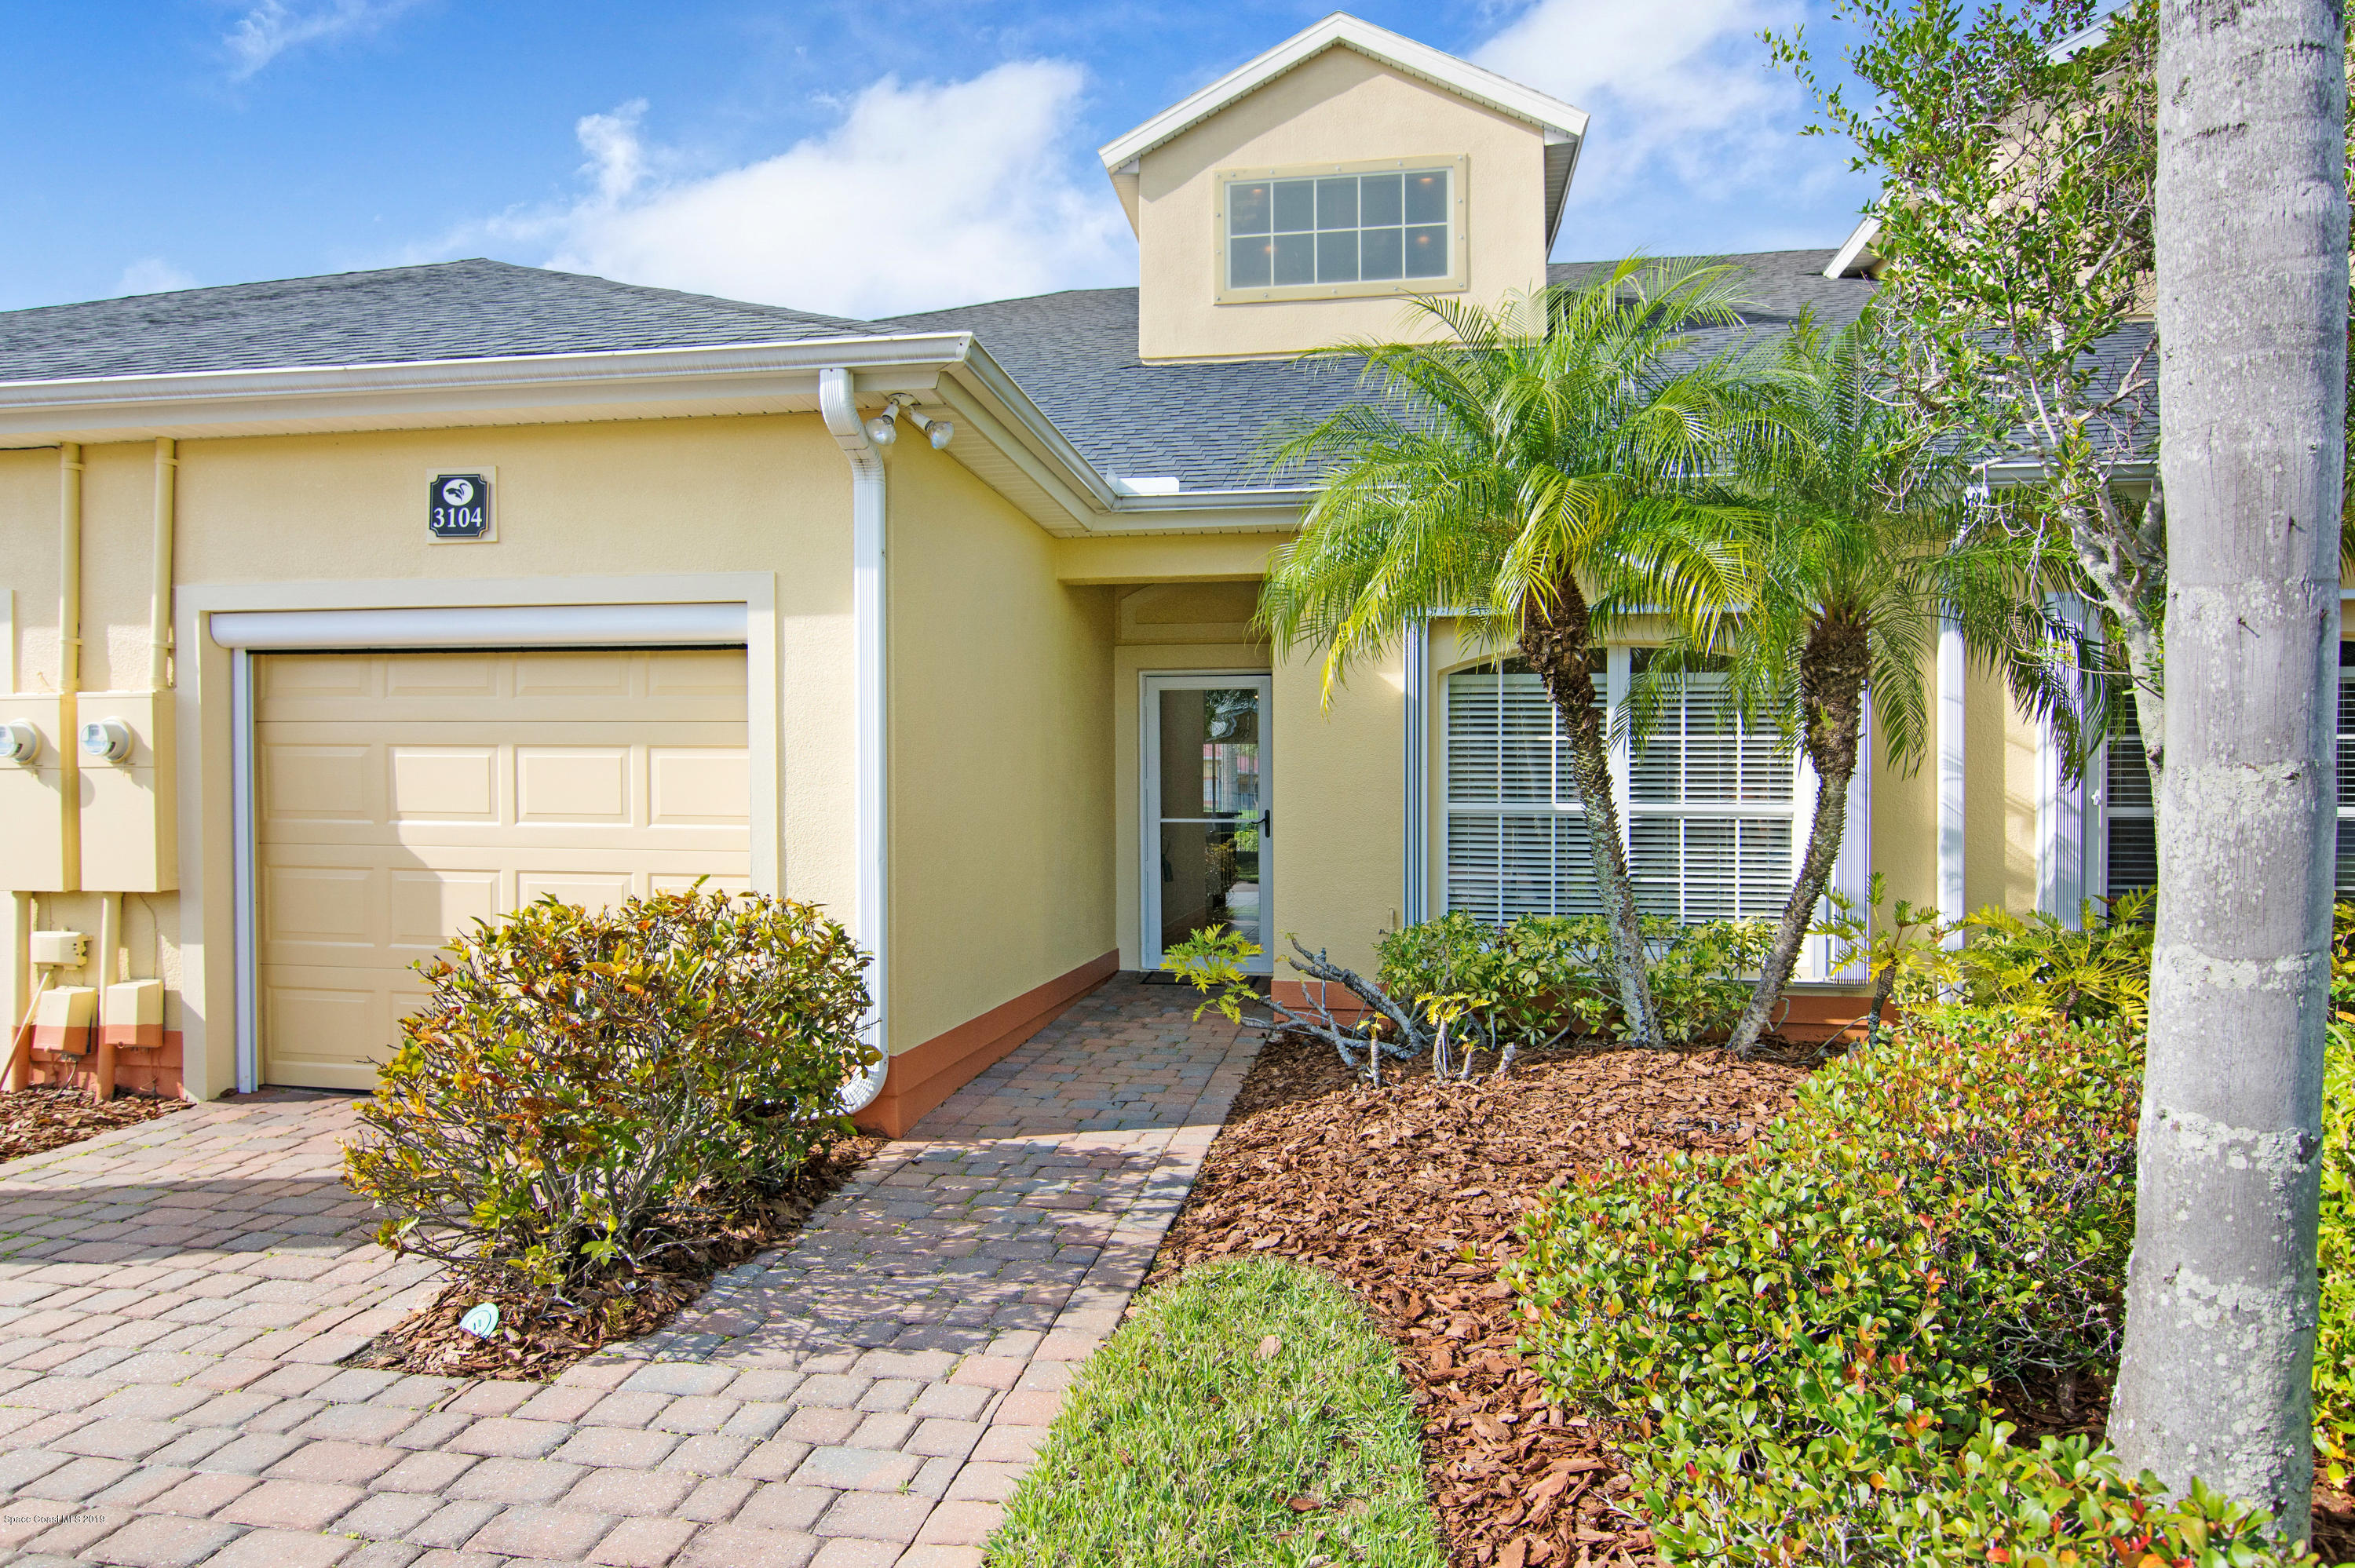 Single Family Home for Sale at 3104 Savoy 3104 Savoy Melbourne, Florida 32940 United States